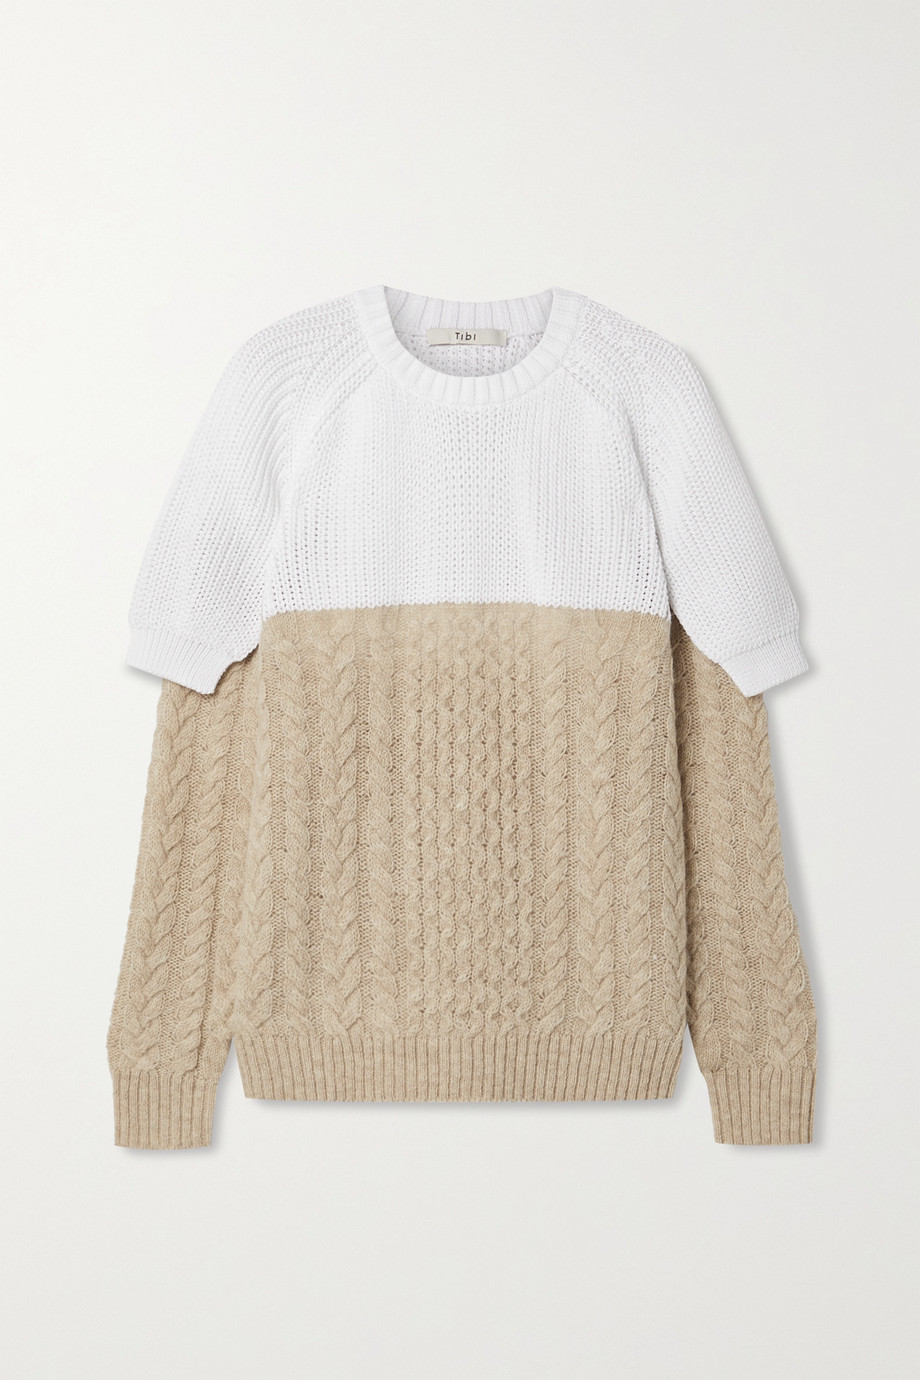 Tibi Layered two-tone cable-knit cotton and wool-blend sweater